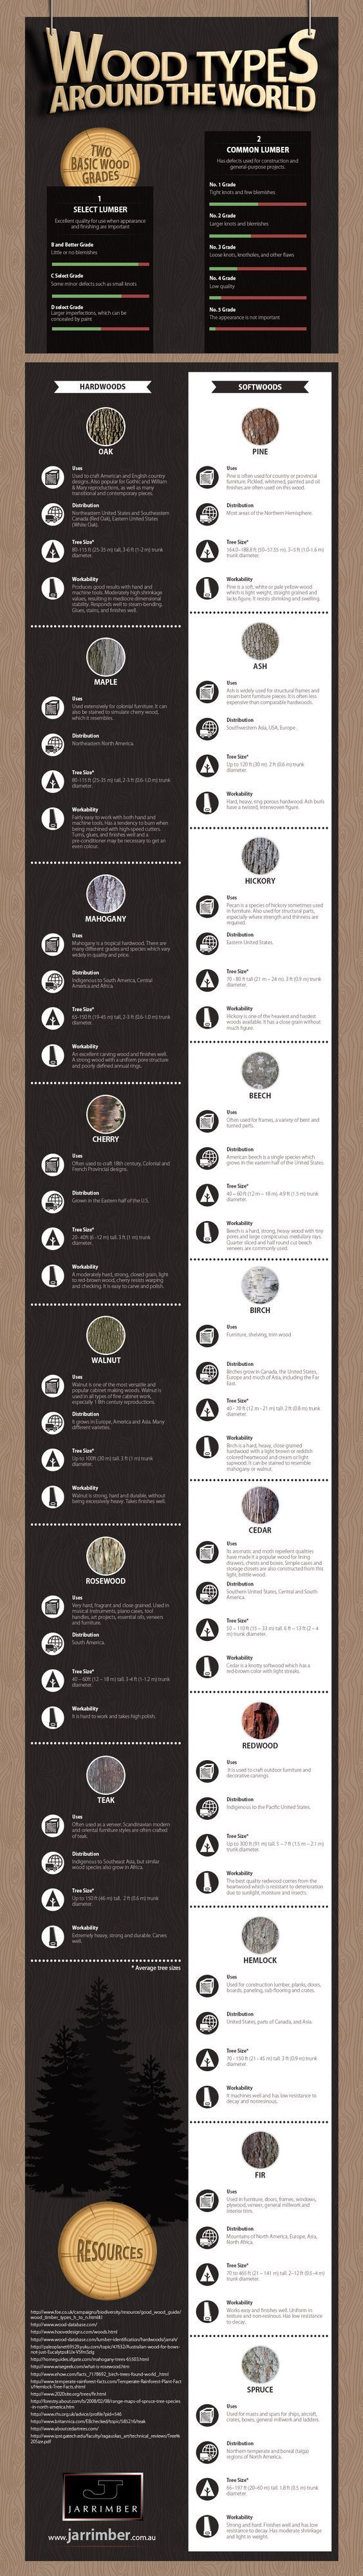 Todd Smith, owner of the Western Australian furniture company, Jarrimber, created this very useful infographic, which showcases the use, distribution, tree size and workability of 17 wood species.